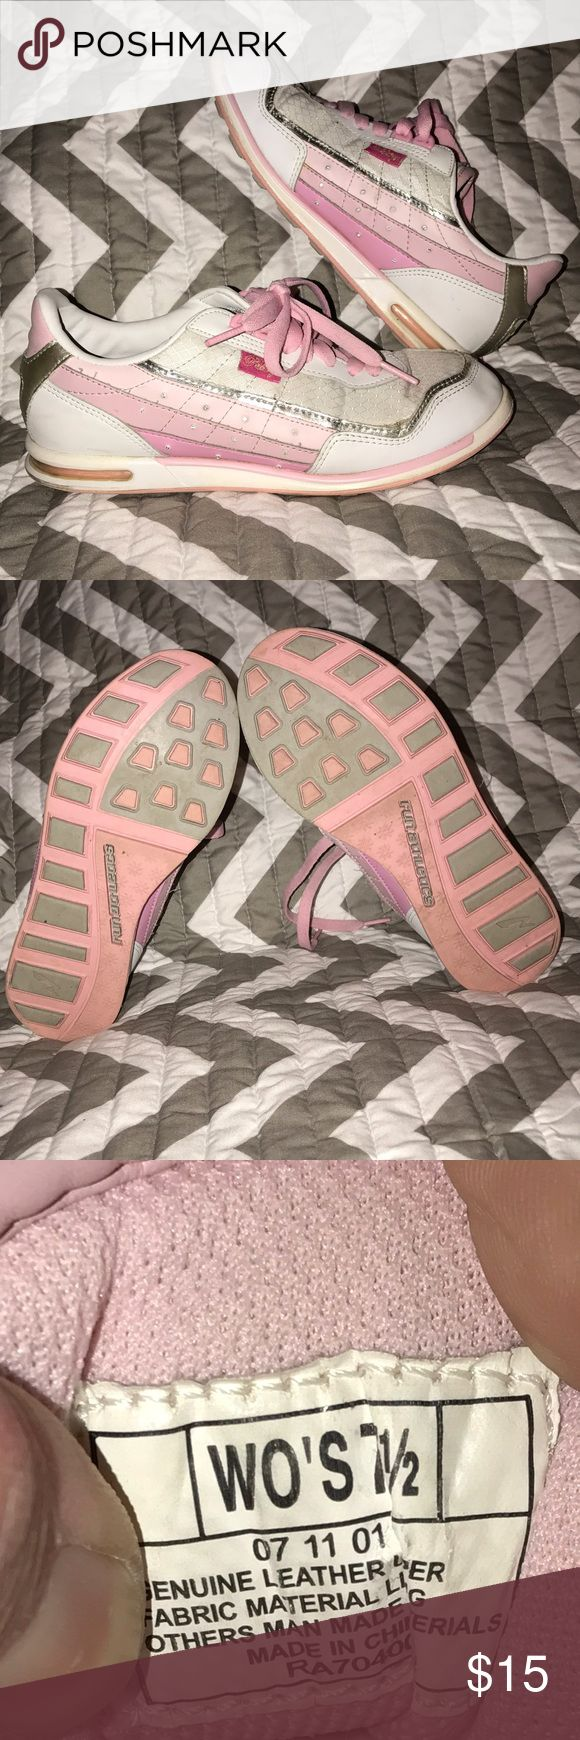 Women's Pastry Shoes Women's Size 7.5 Pink & White Pastry Shoes. Gently Worn. Shoes Sneakers